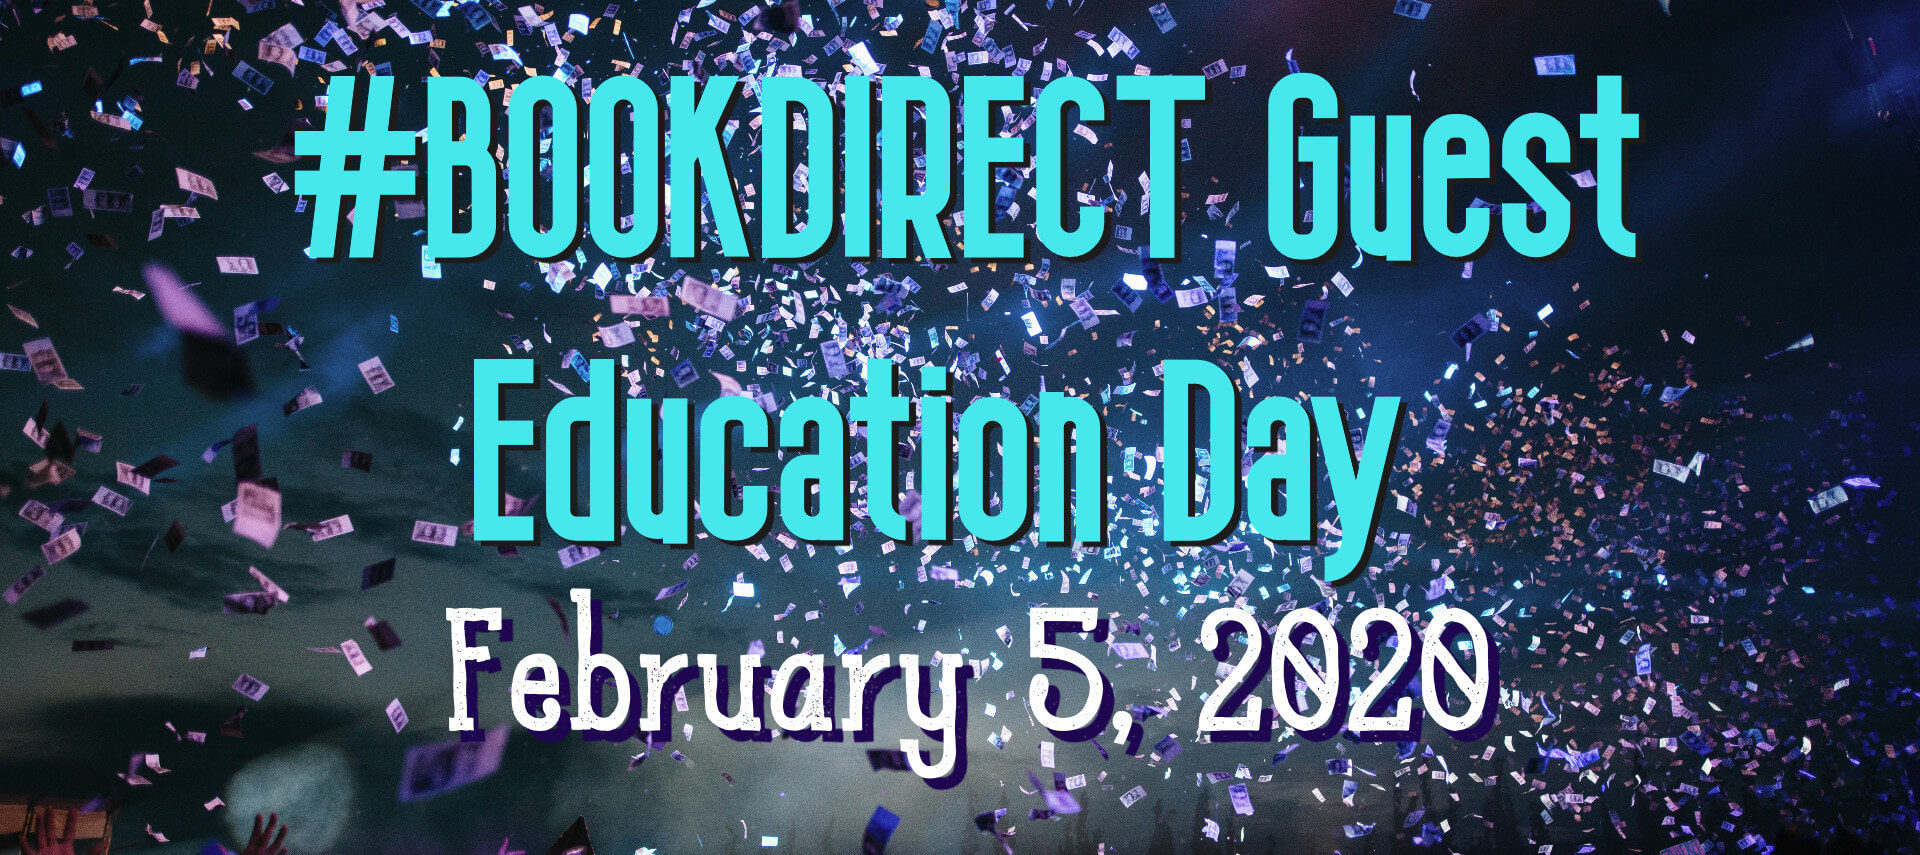 Book Direct Day - February 5, 2020 on background of purple confetti